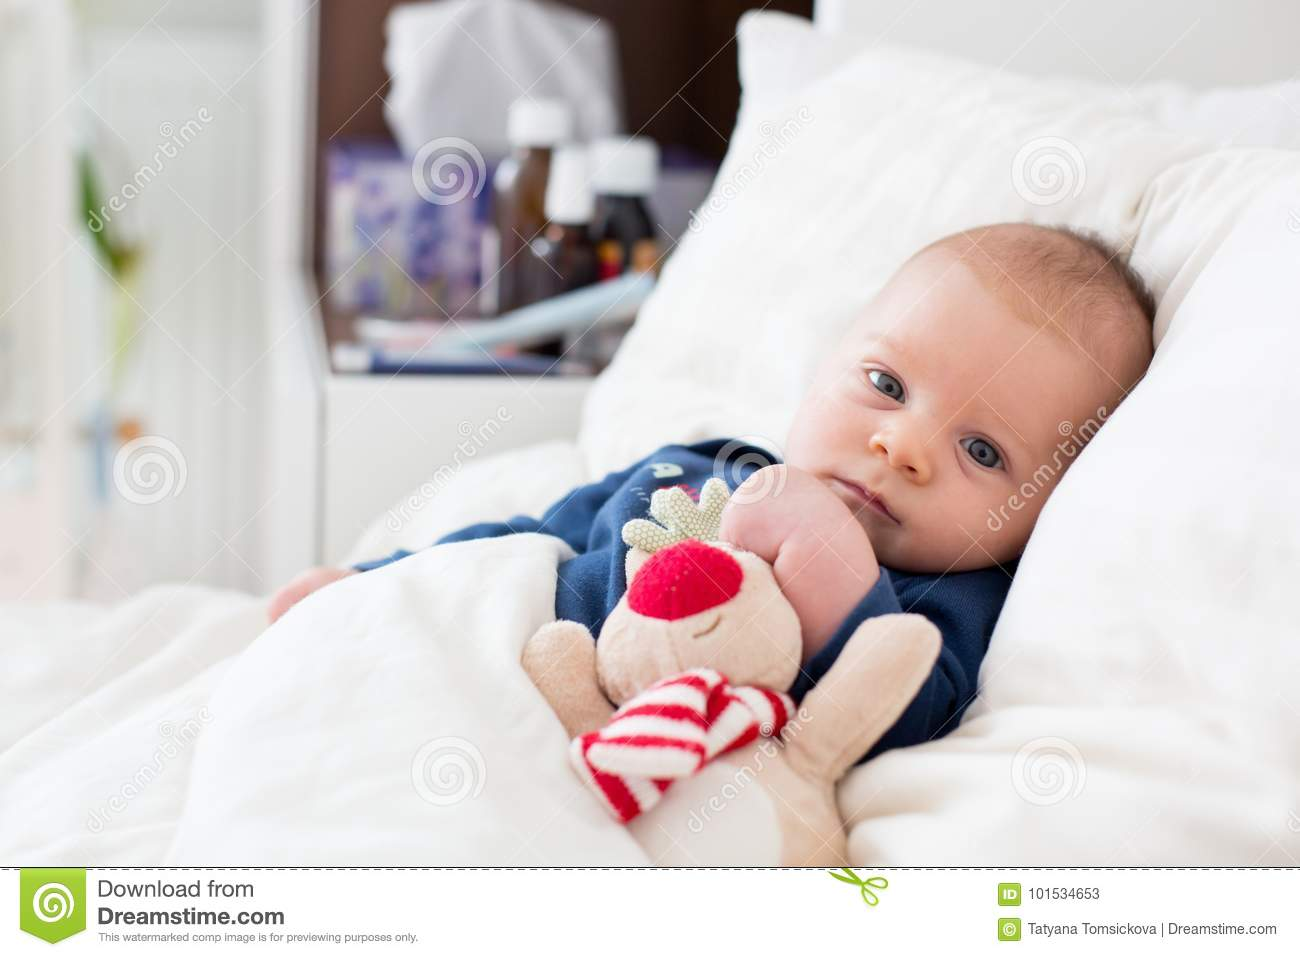 Newborn Infant With Fever Cute Newborn Baby Boy Lying In Bed With Cold Stock Image